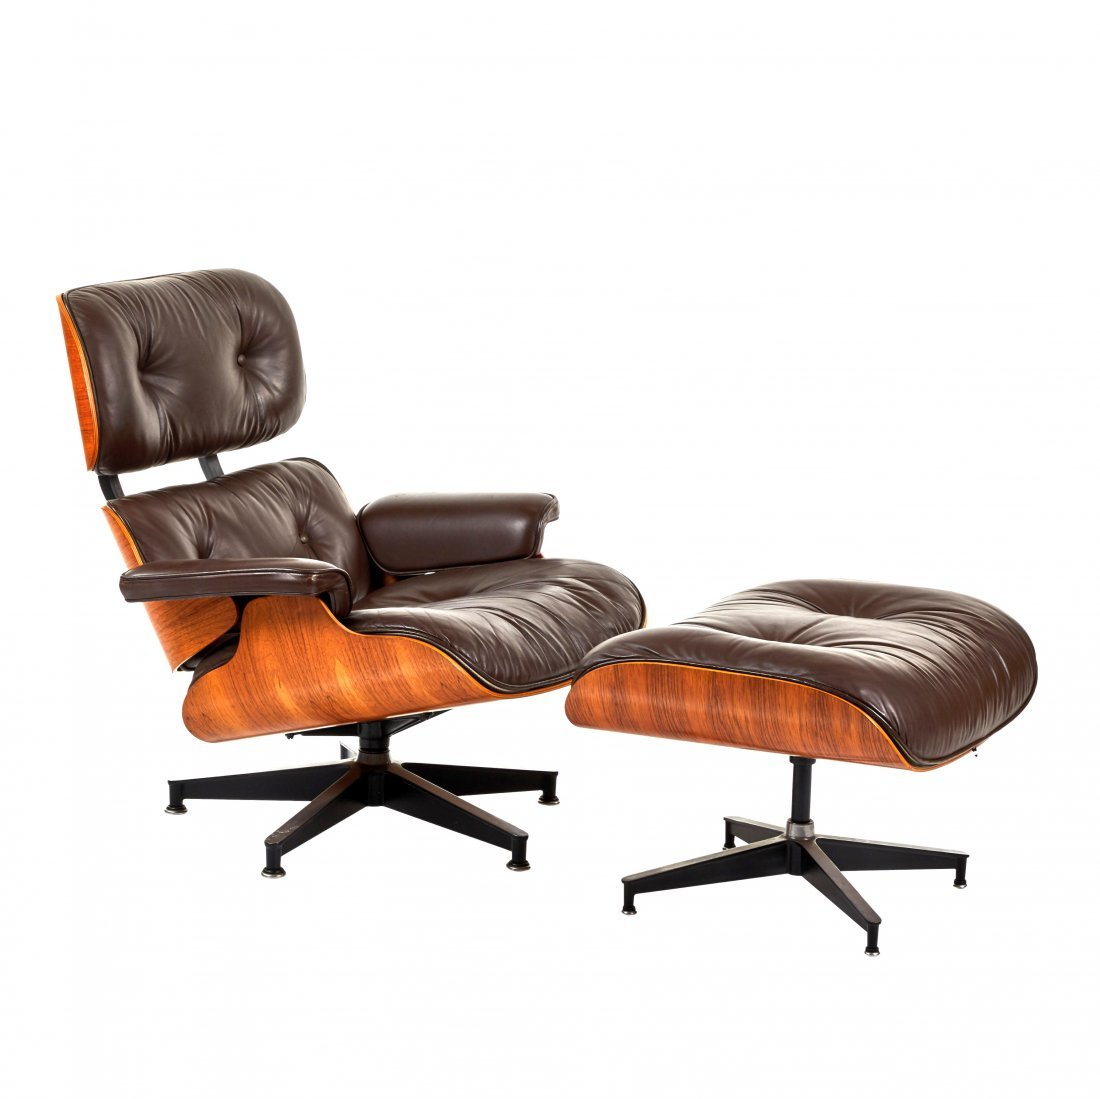 Charles Eames Rosewood Lounge Chair and Ottoman (2)